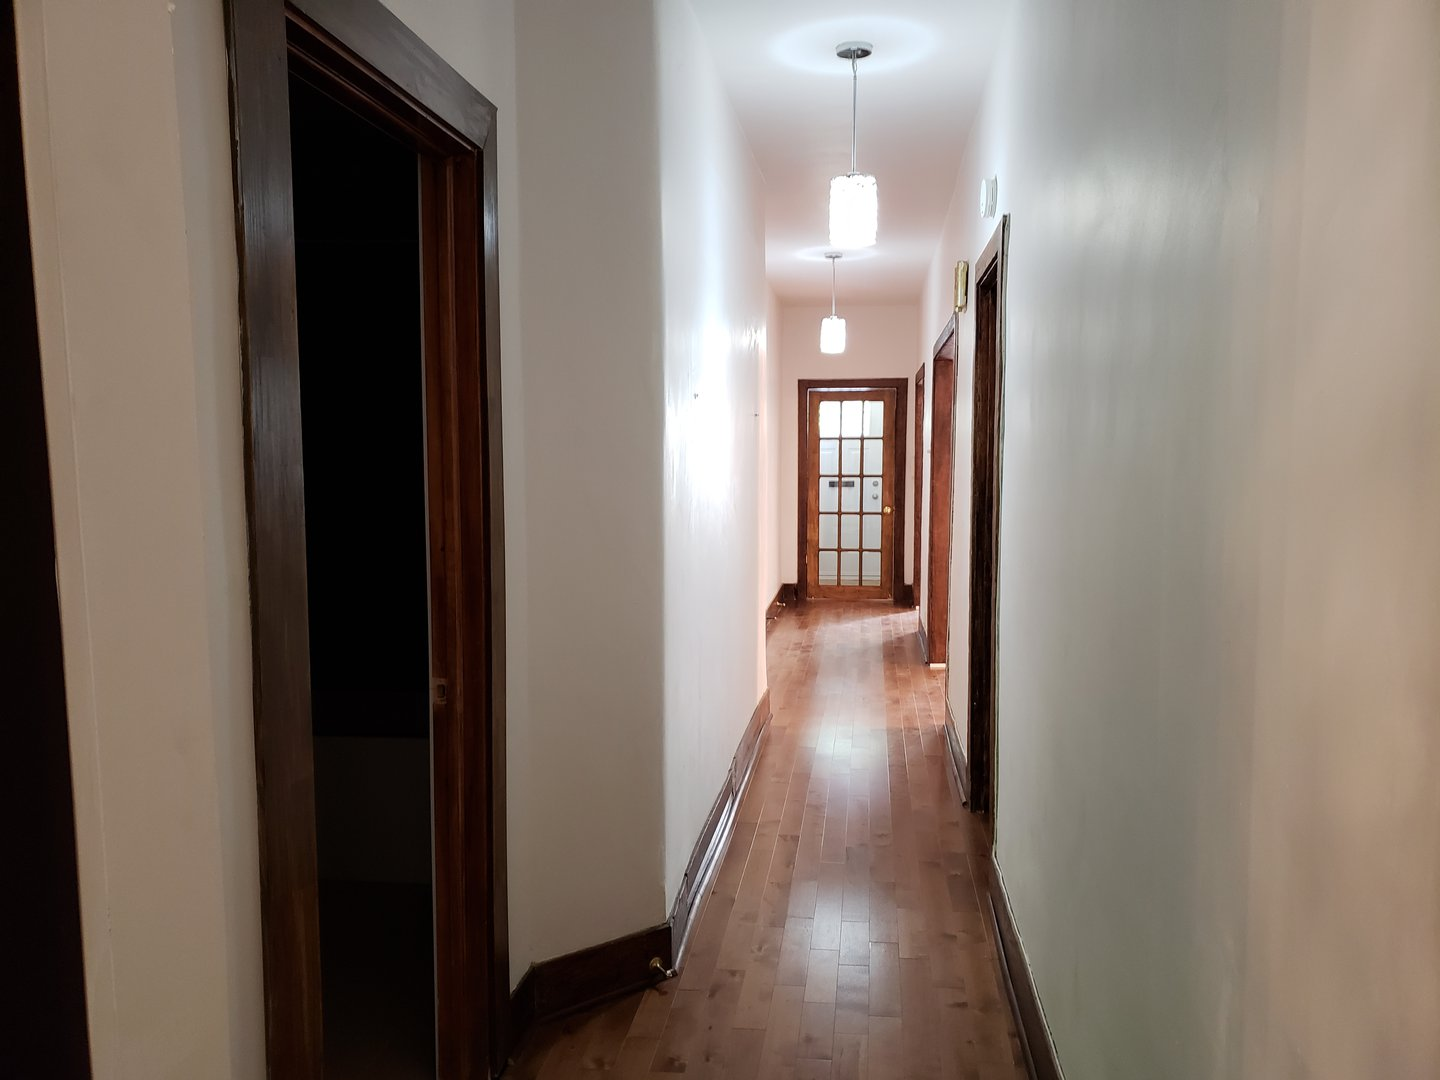 Apartment for rent at 4649 Avenue Clanranald, Montréal, QC. This is the corridor with hardwood floor, french doors and natural light.